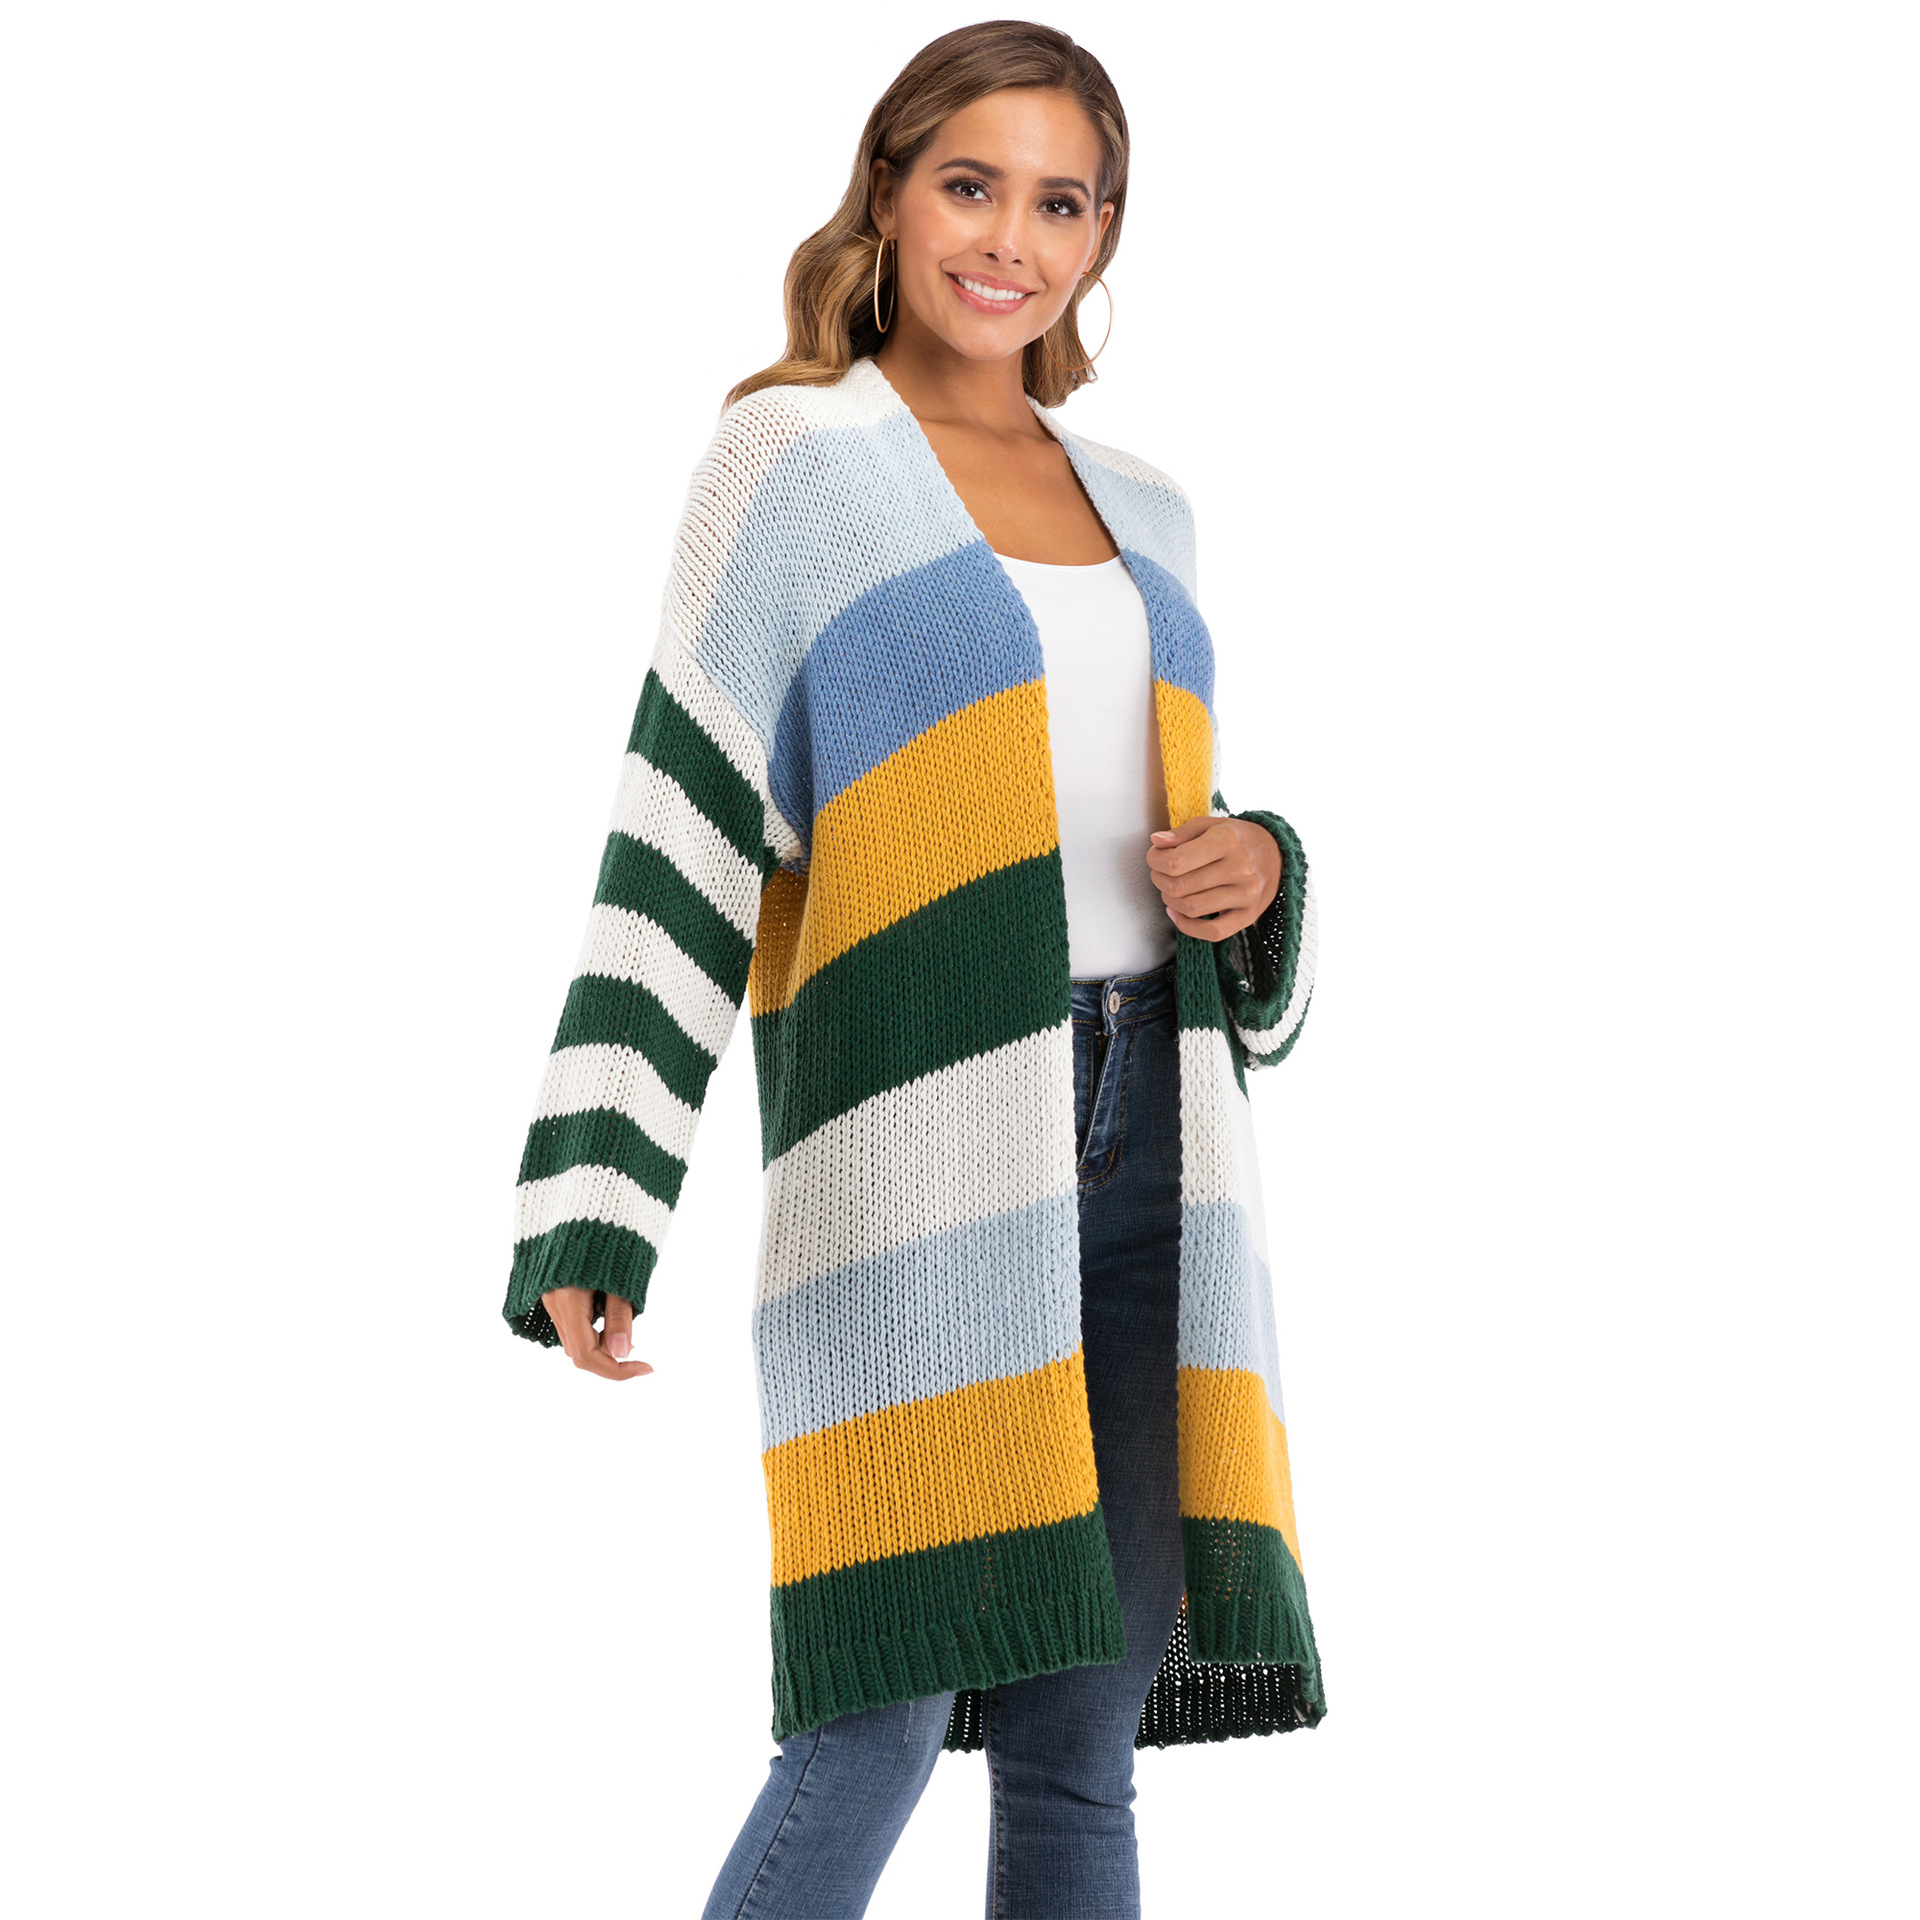 Women's Spring Knitting Cardigan Casual Long Joint Contrast Color Striped Oversize Knitted Sweater Cardigan Patched Outwear